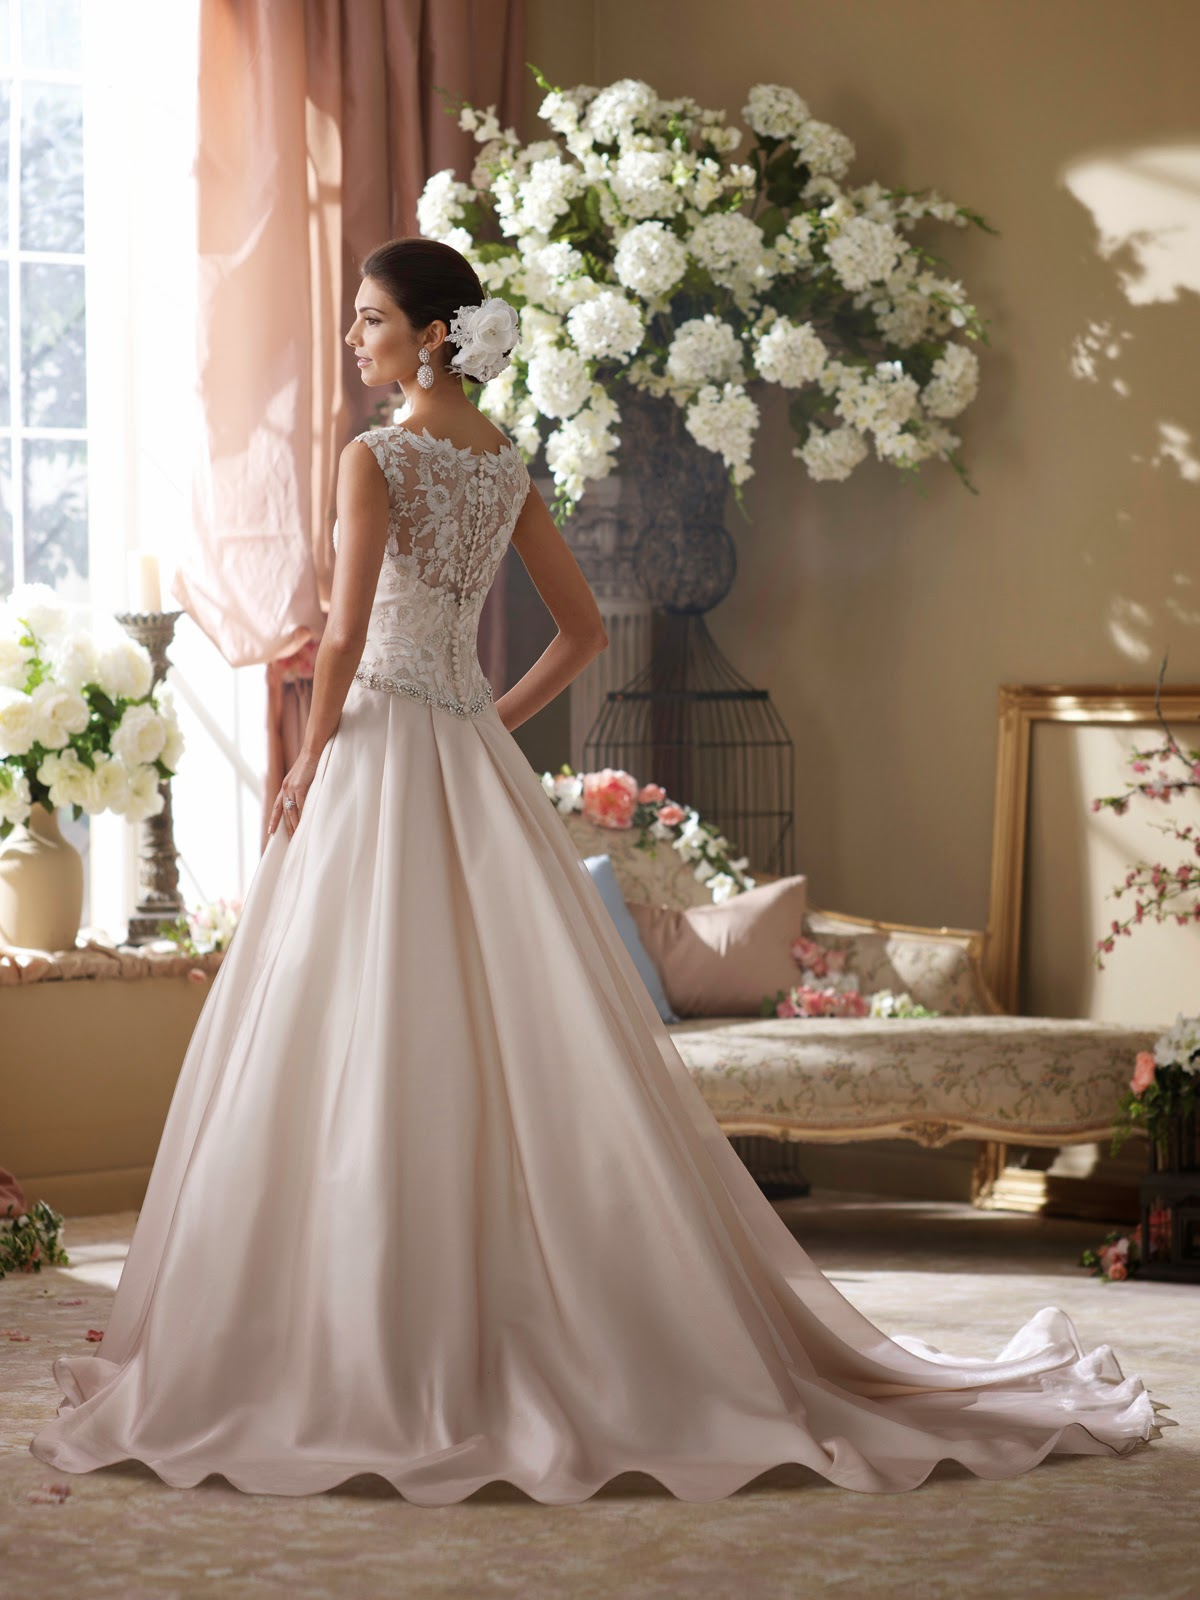 David's Bridal is credited with revolutionizing the bridal retail industry. After 50 years in the business, we introduced a new concept offering an innovative shopping option for modern brides-to-be: stores filled with a vast selection of designer wedding gowns, in stock, in every size.